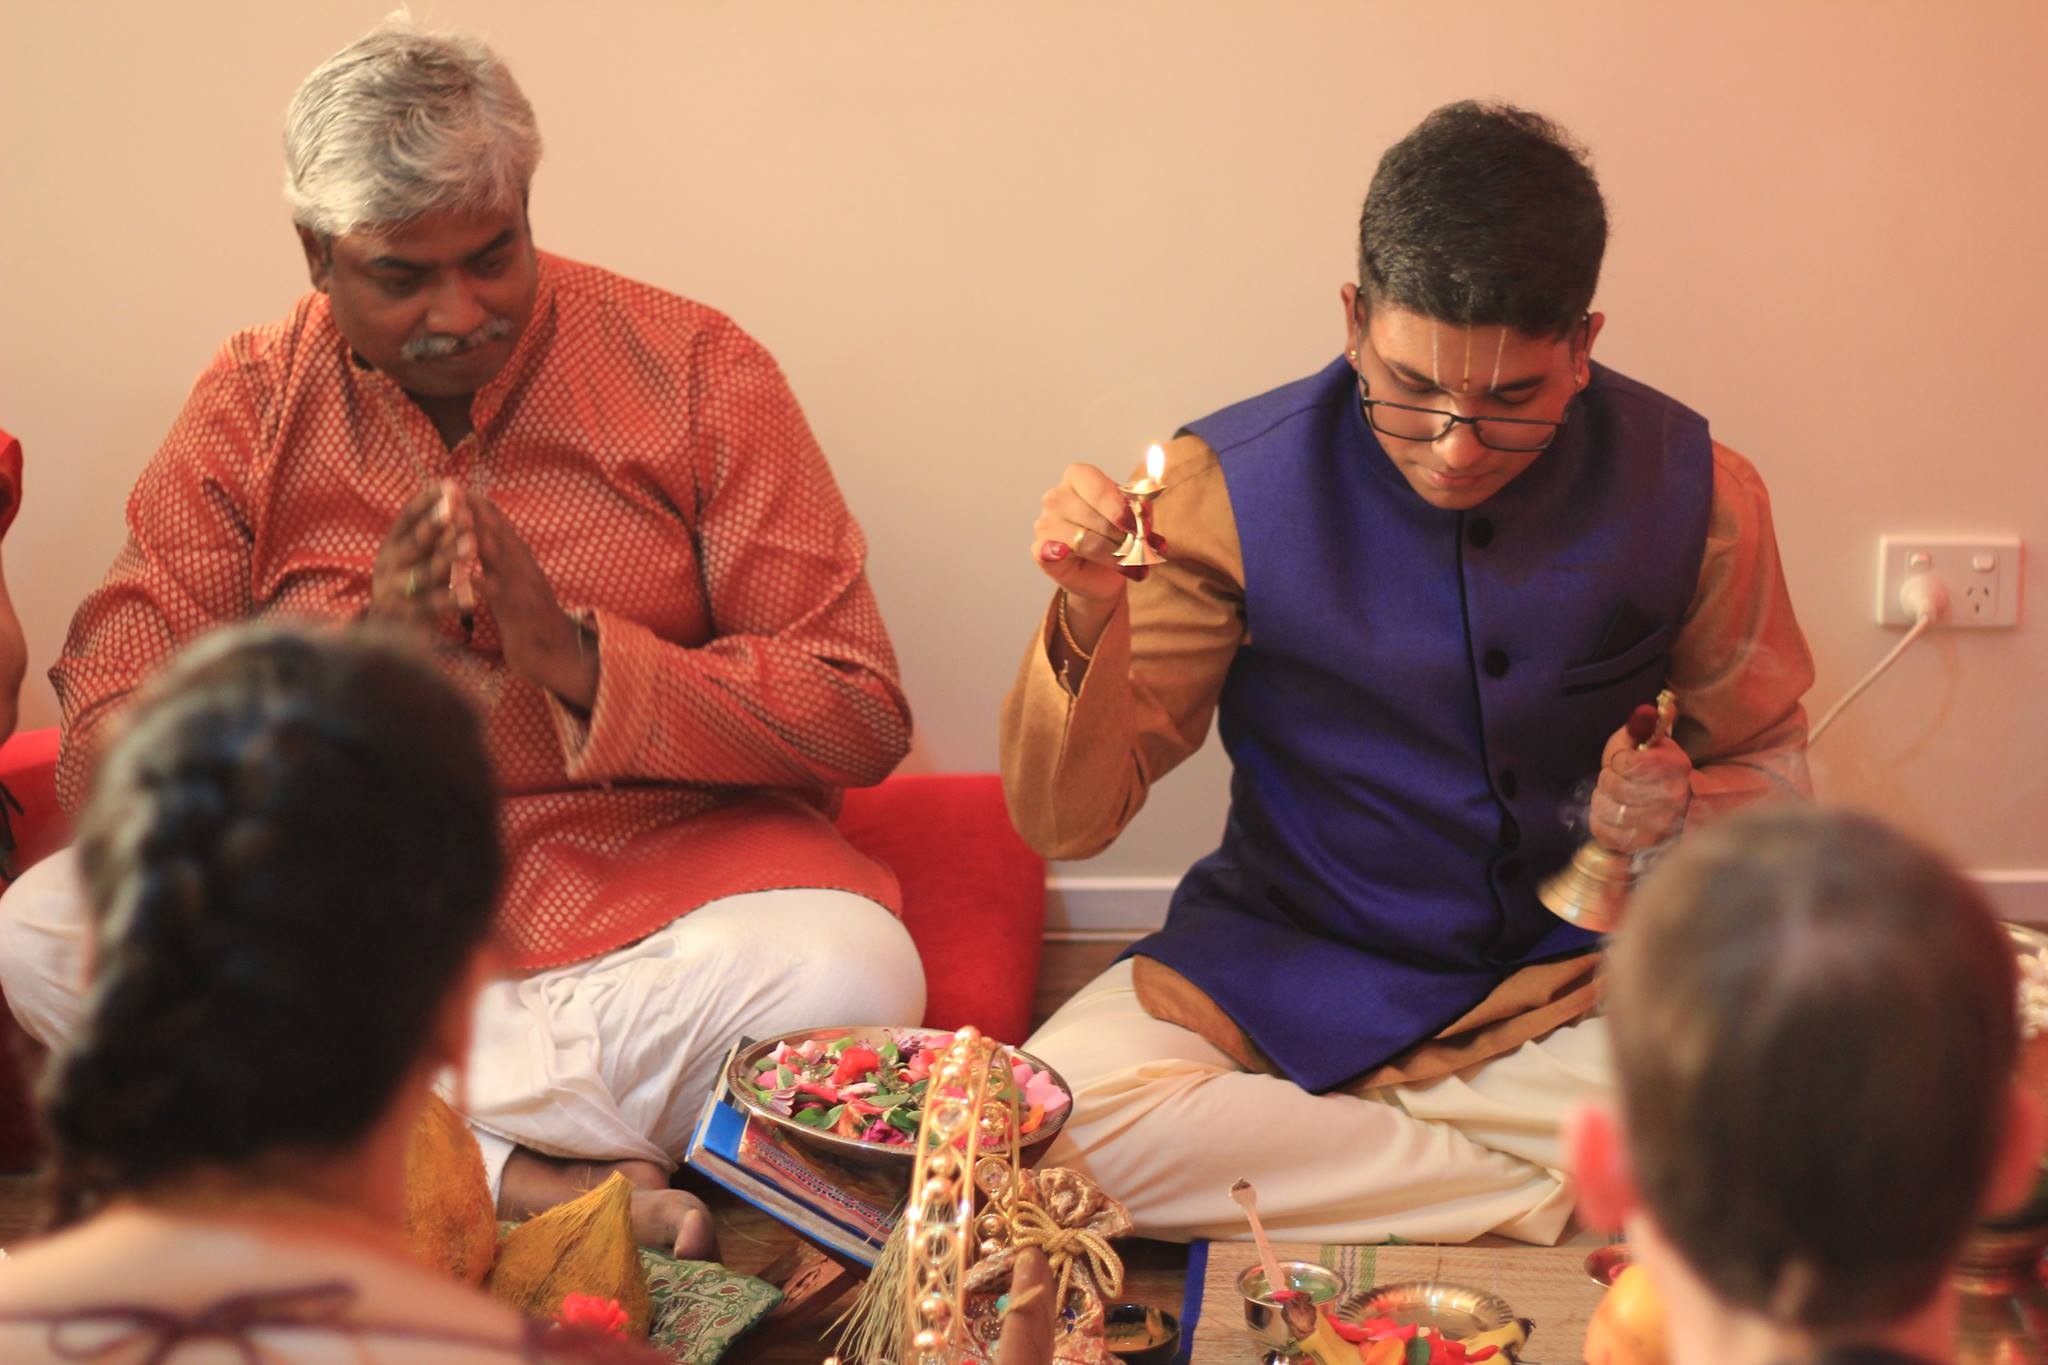 Since no priest agreed to perform the ceremony, Salaphaty (who is a trained priest) himself officiated the Niscayatharta Ceremony with Vishvakshena Aradhana and Varuna Puja